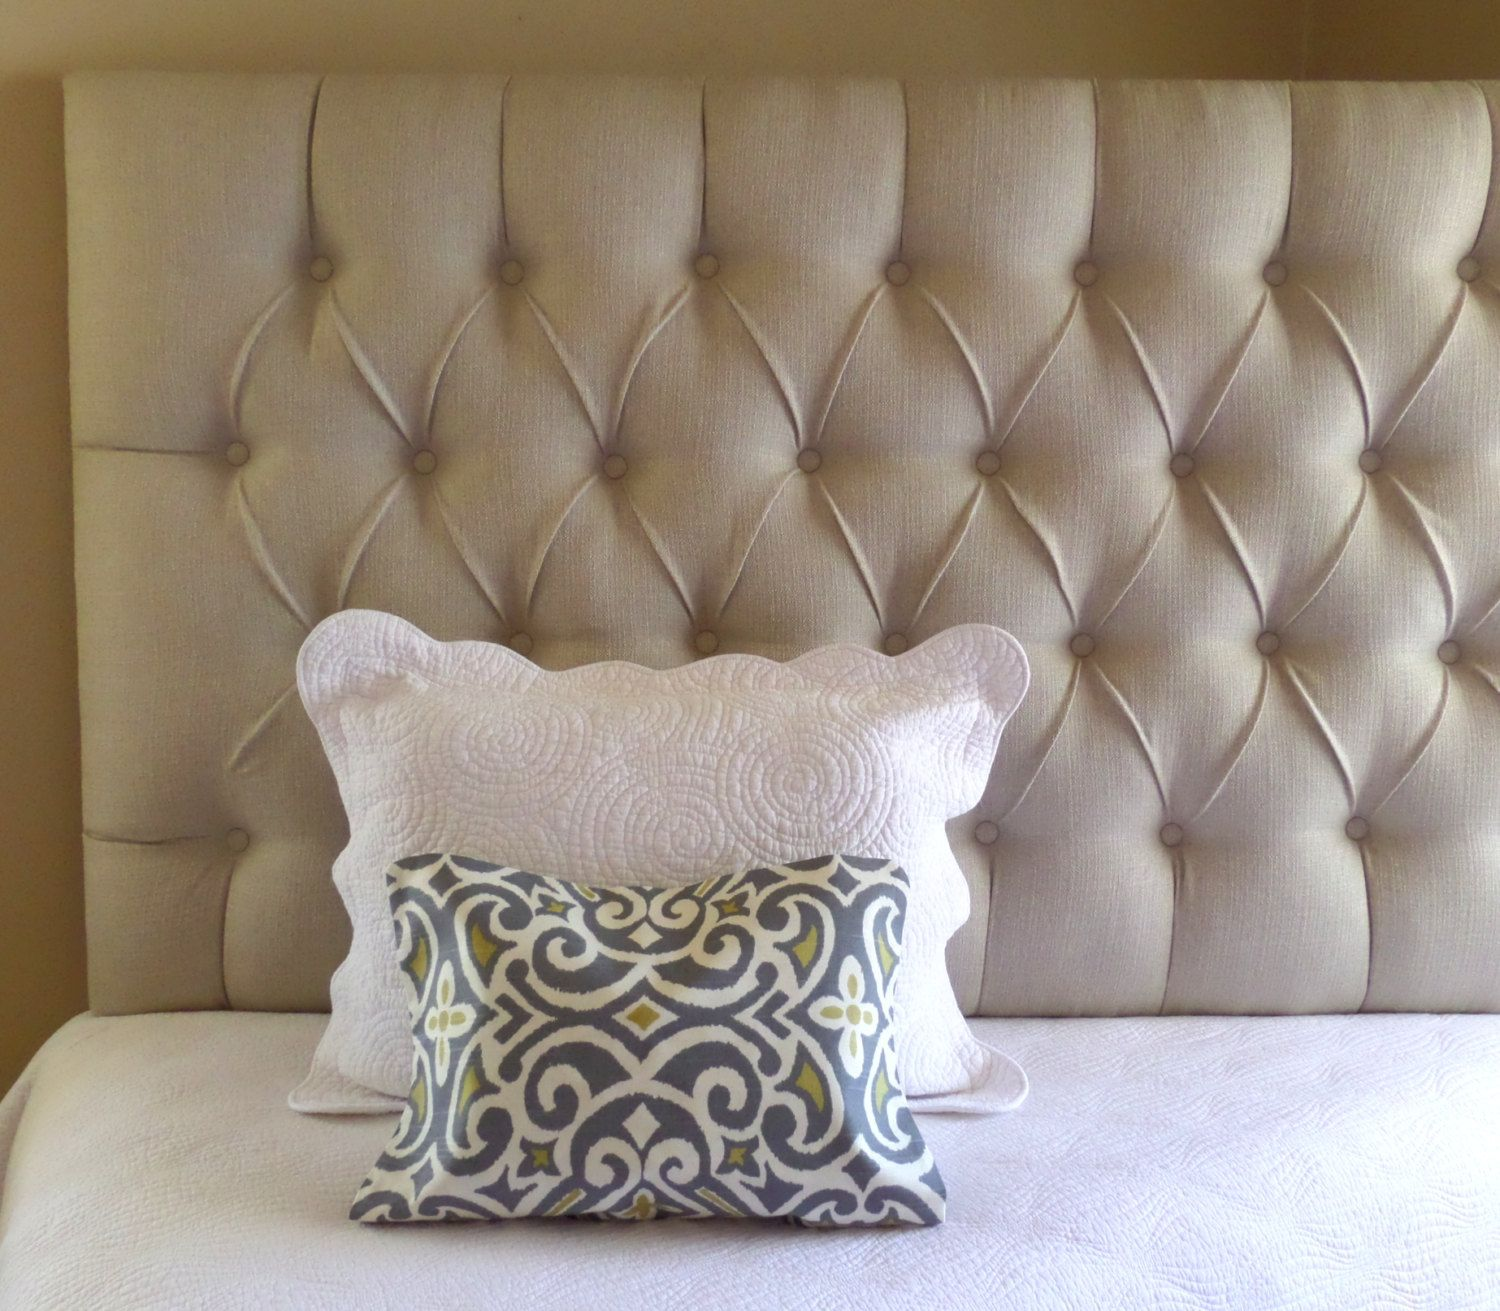 Custom Tufted Upholstered Headboard Wall Mounted Made To Order By Thetuftedfrog On Etsy